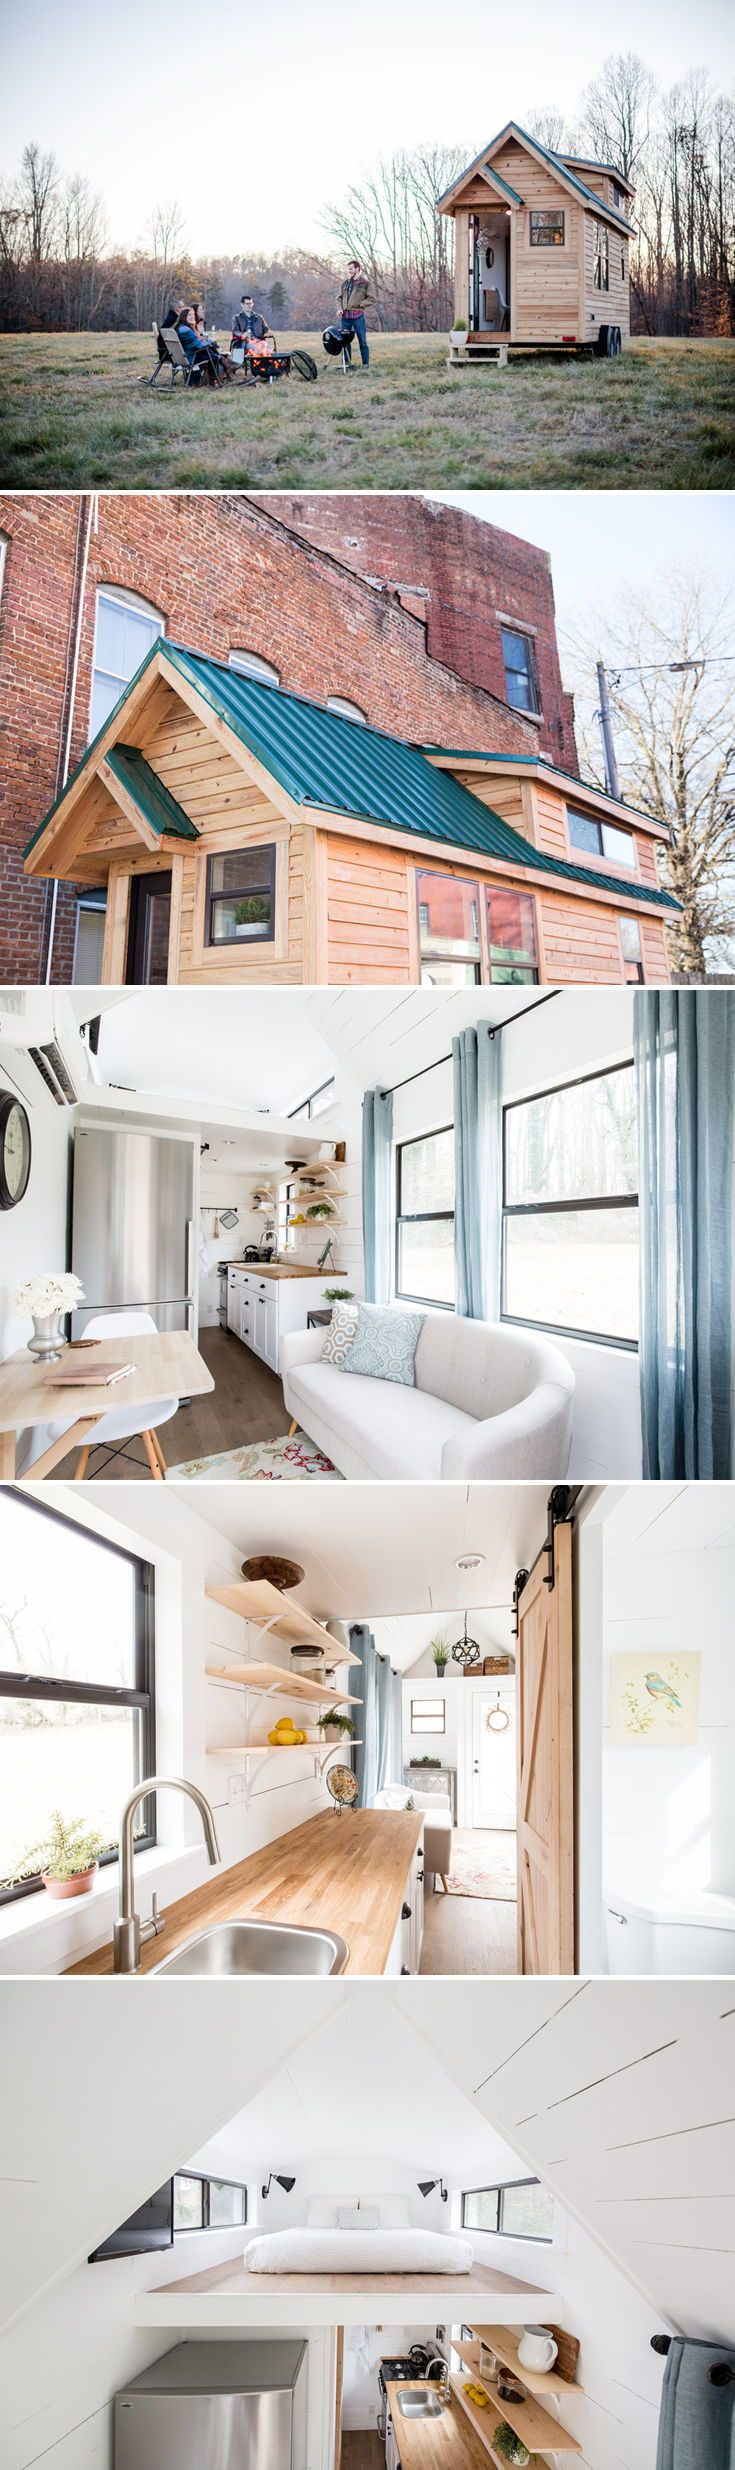 Lindley is a traditional style tiny house built byTiny Life ConstructioninGreensboro, NC. The 20′ house is ideal for a couple or single person wanting to live the tiny life.